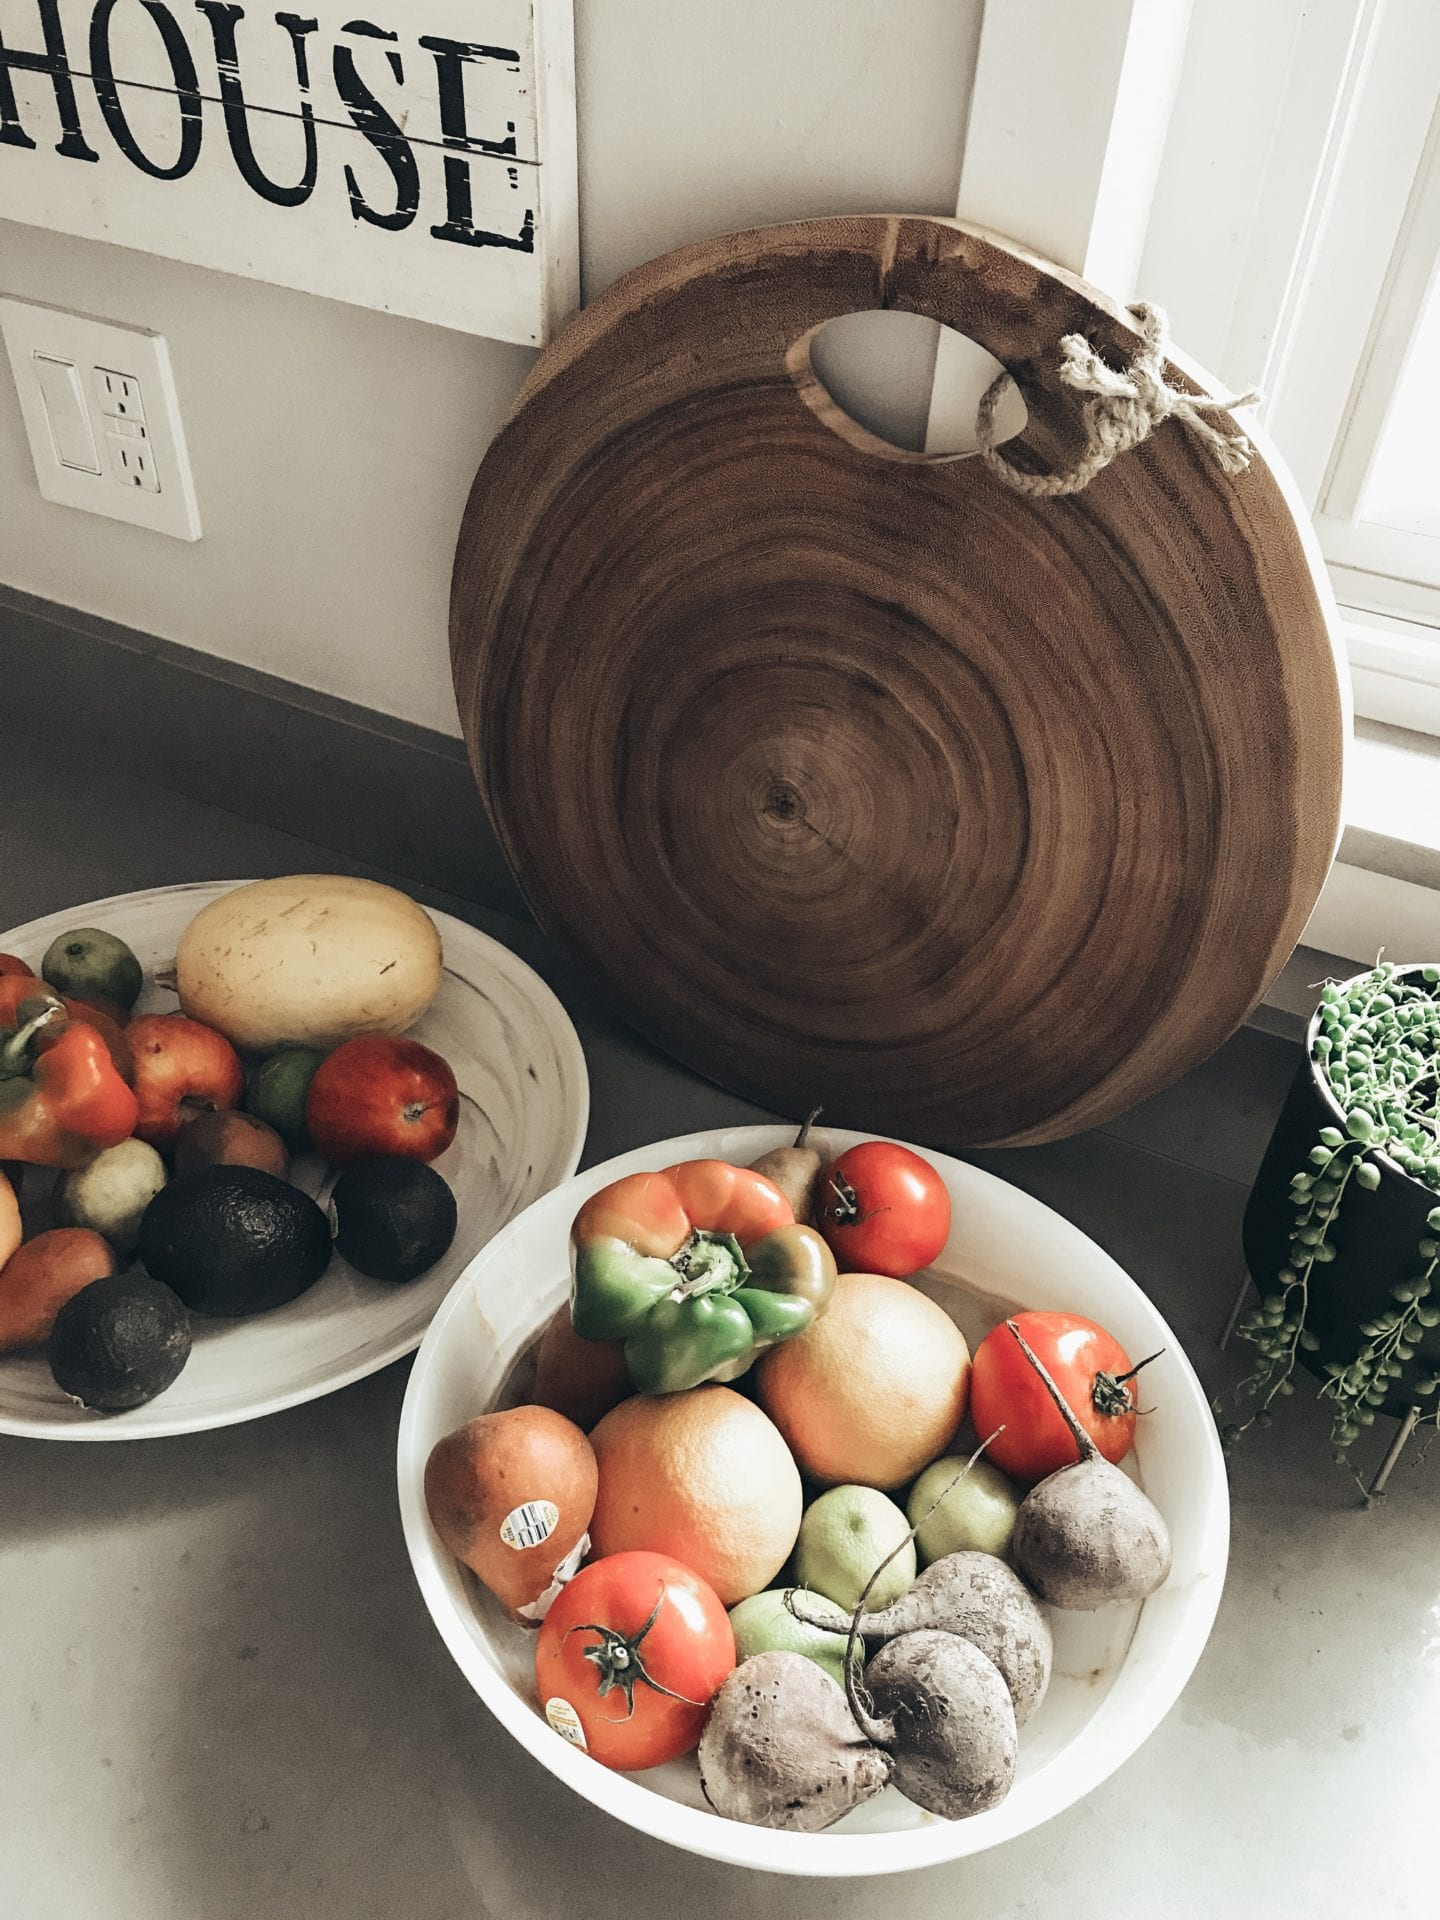 Holiday eating| Tips to get back on track after overindulging during the holidays  | Tips & Tricks| via justaddglam.com | How to Stop Overeating during the Holidays featured by top San Francisco life and style blog, Just Add Glam: image of vegetable bowls